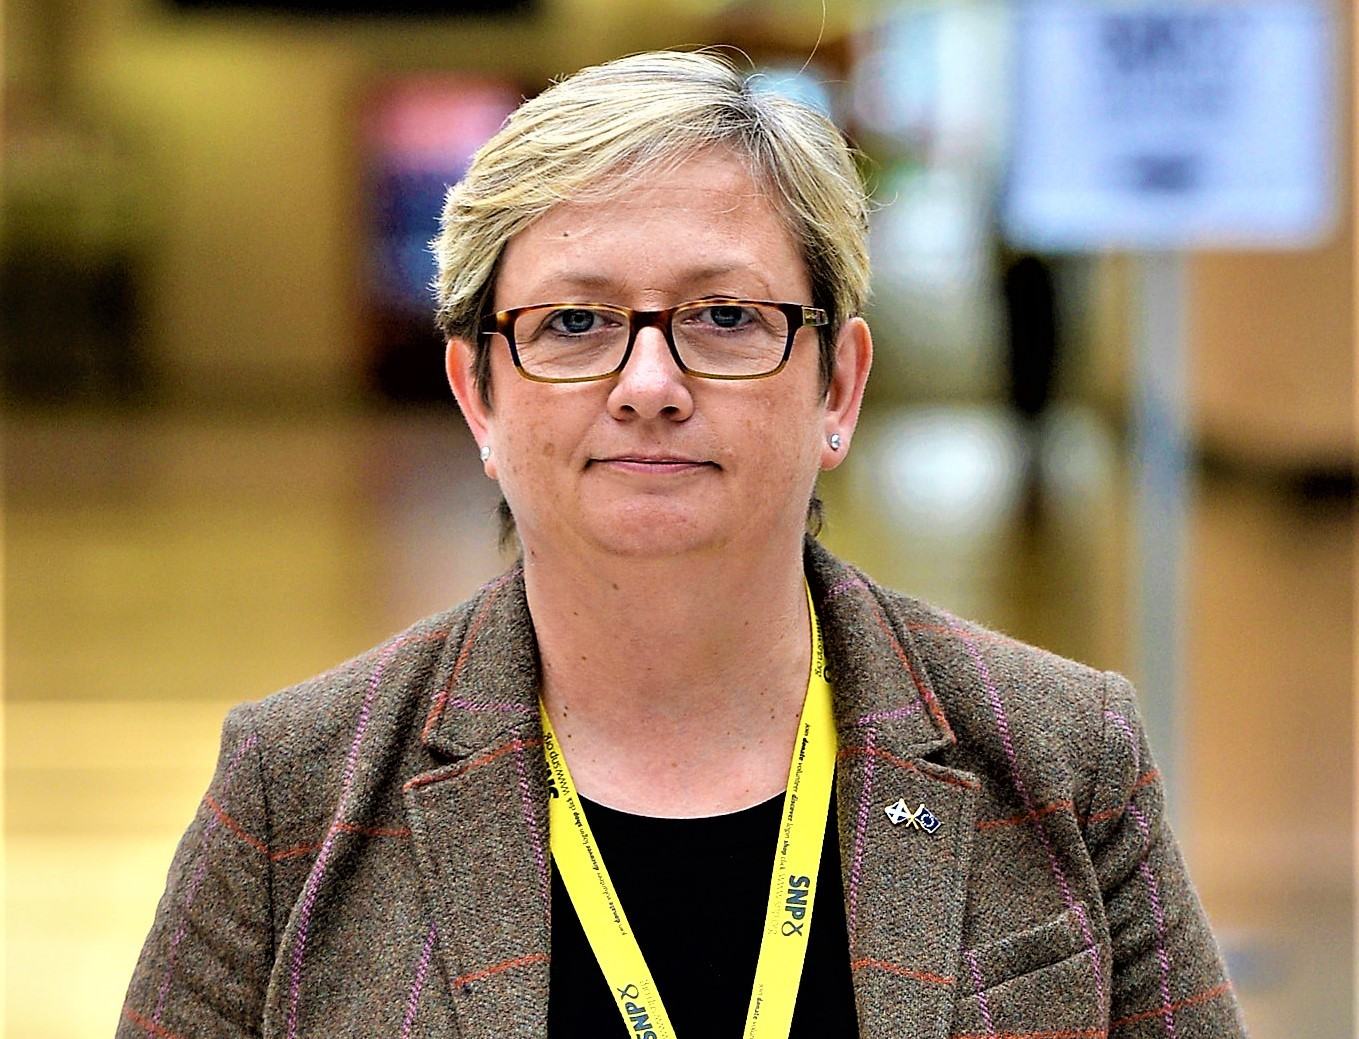 SNP MP Joanna Cherry made the remarks on her Twitter